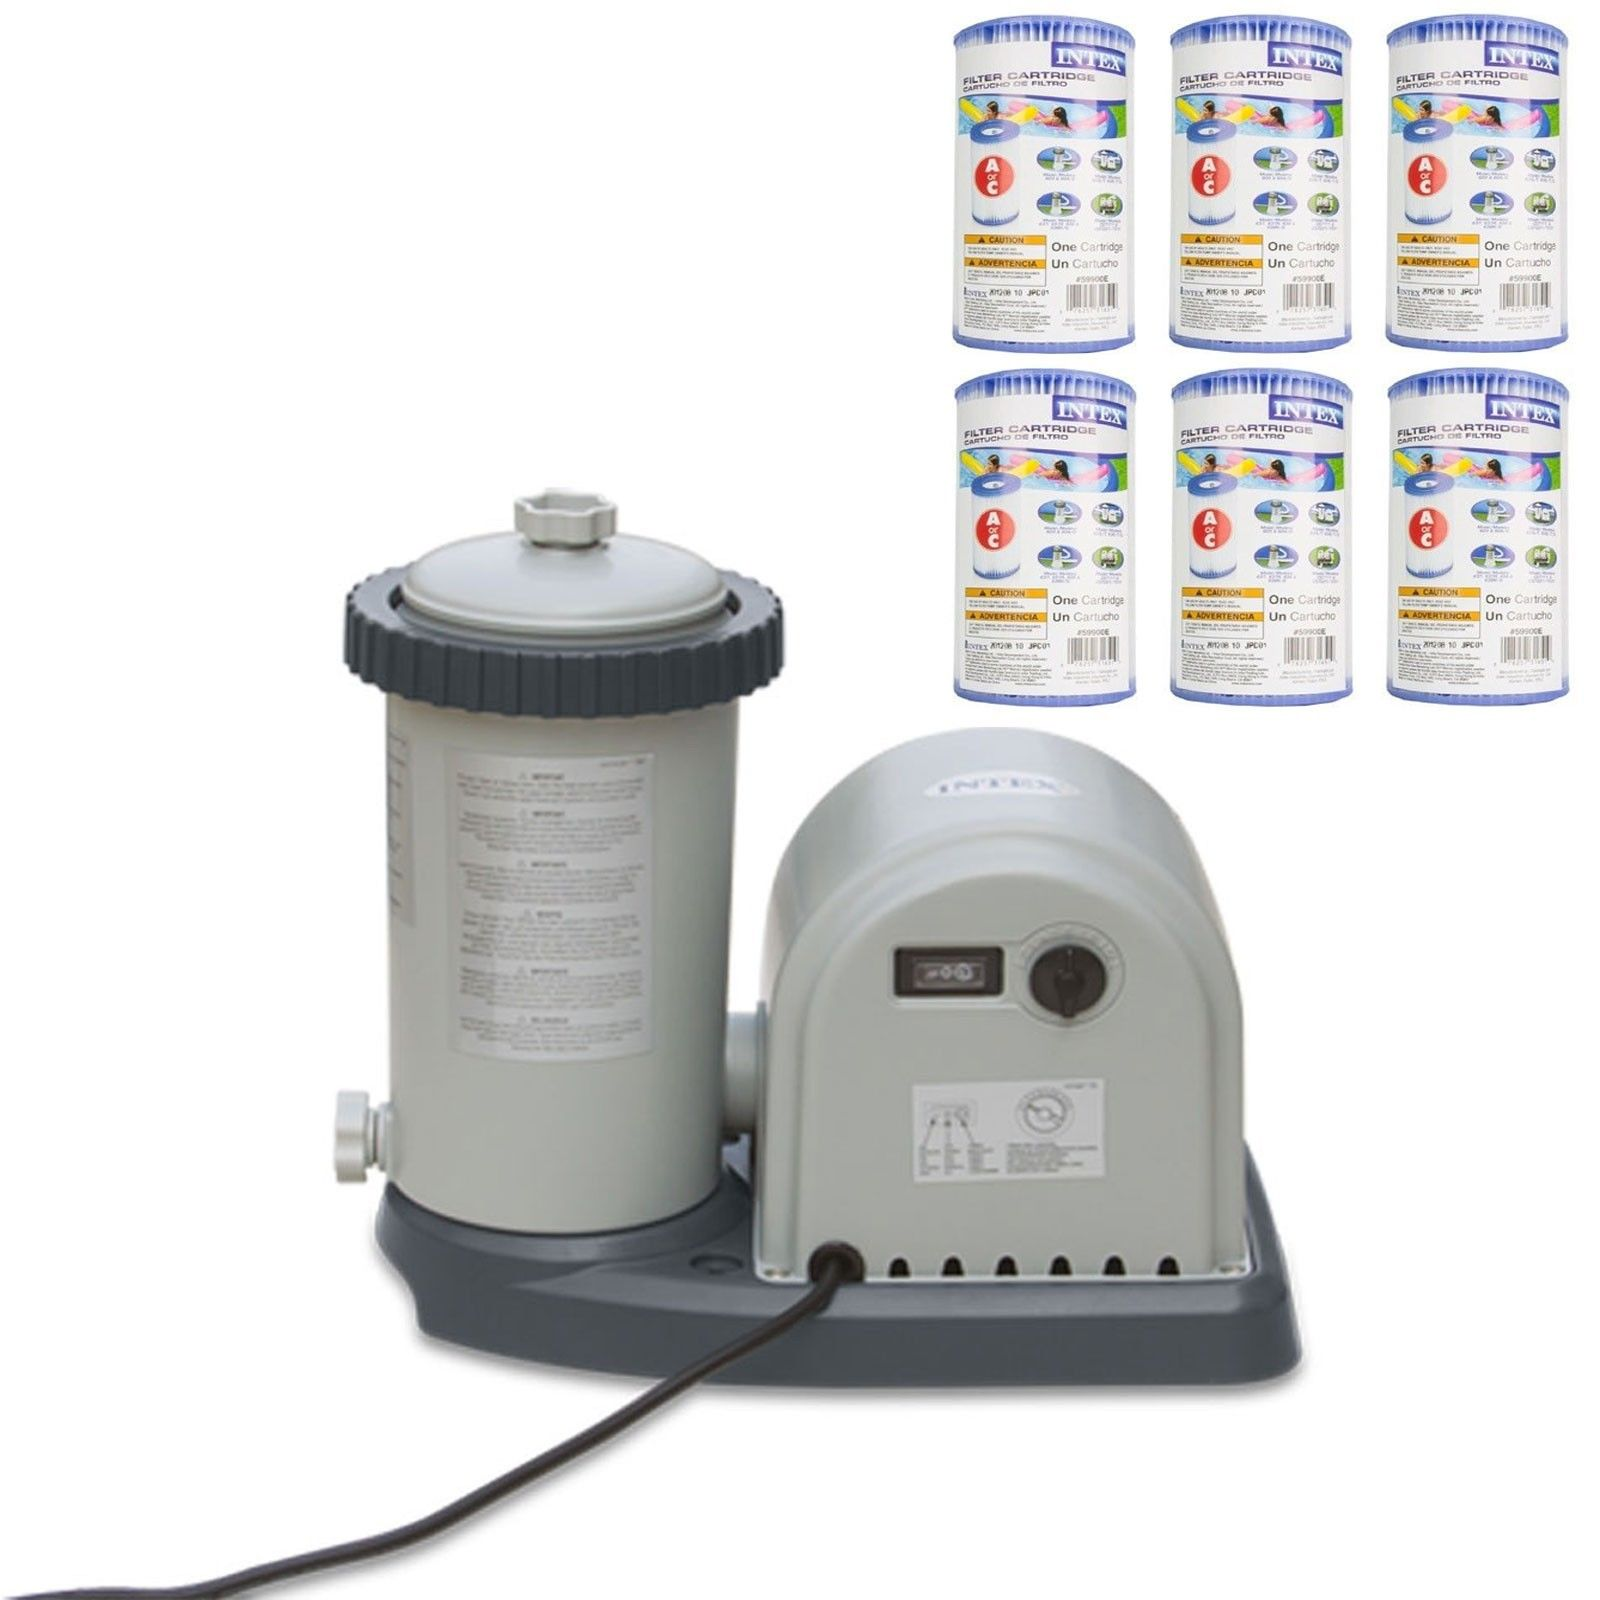 Intex 1500 GPH Easy Set Pool Filter Pump GFCI & 6 Type A   C Filter Cartridges by